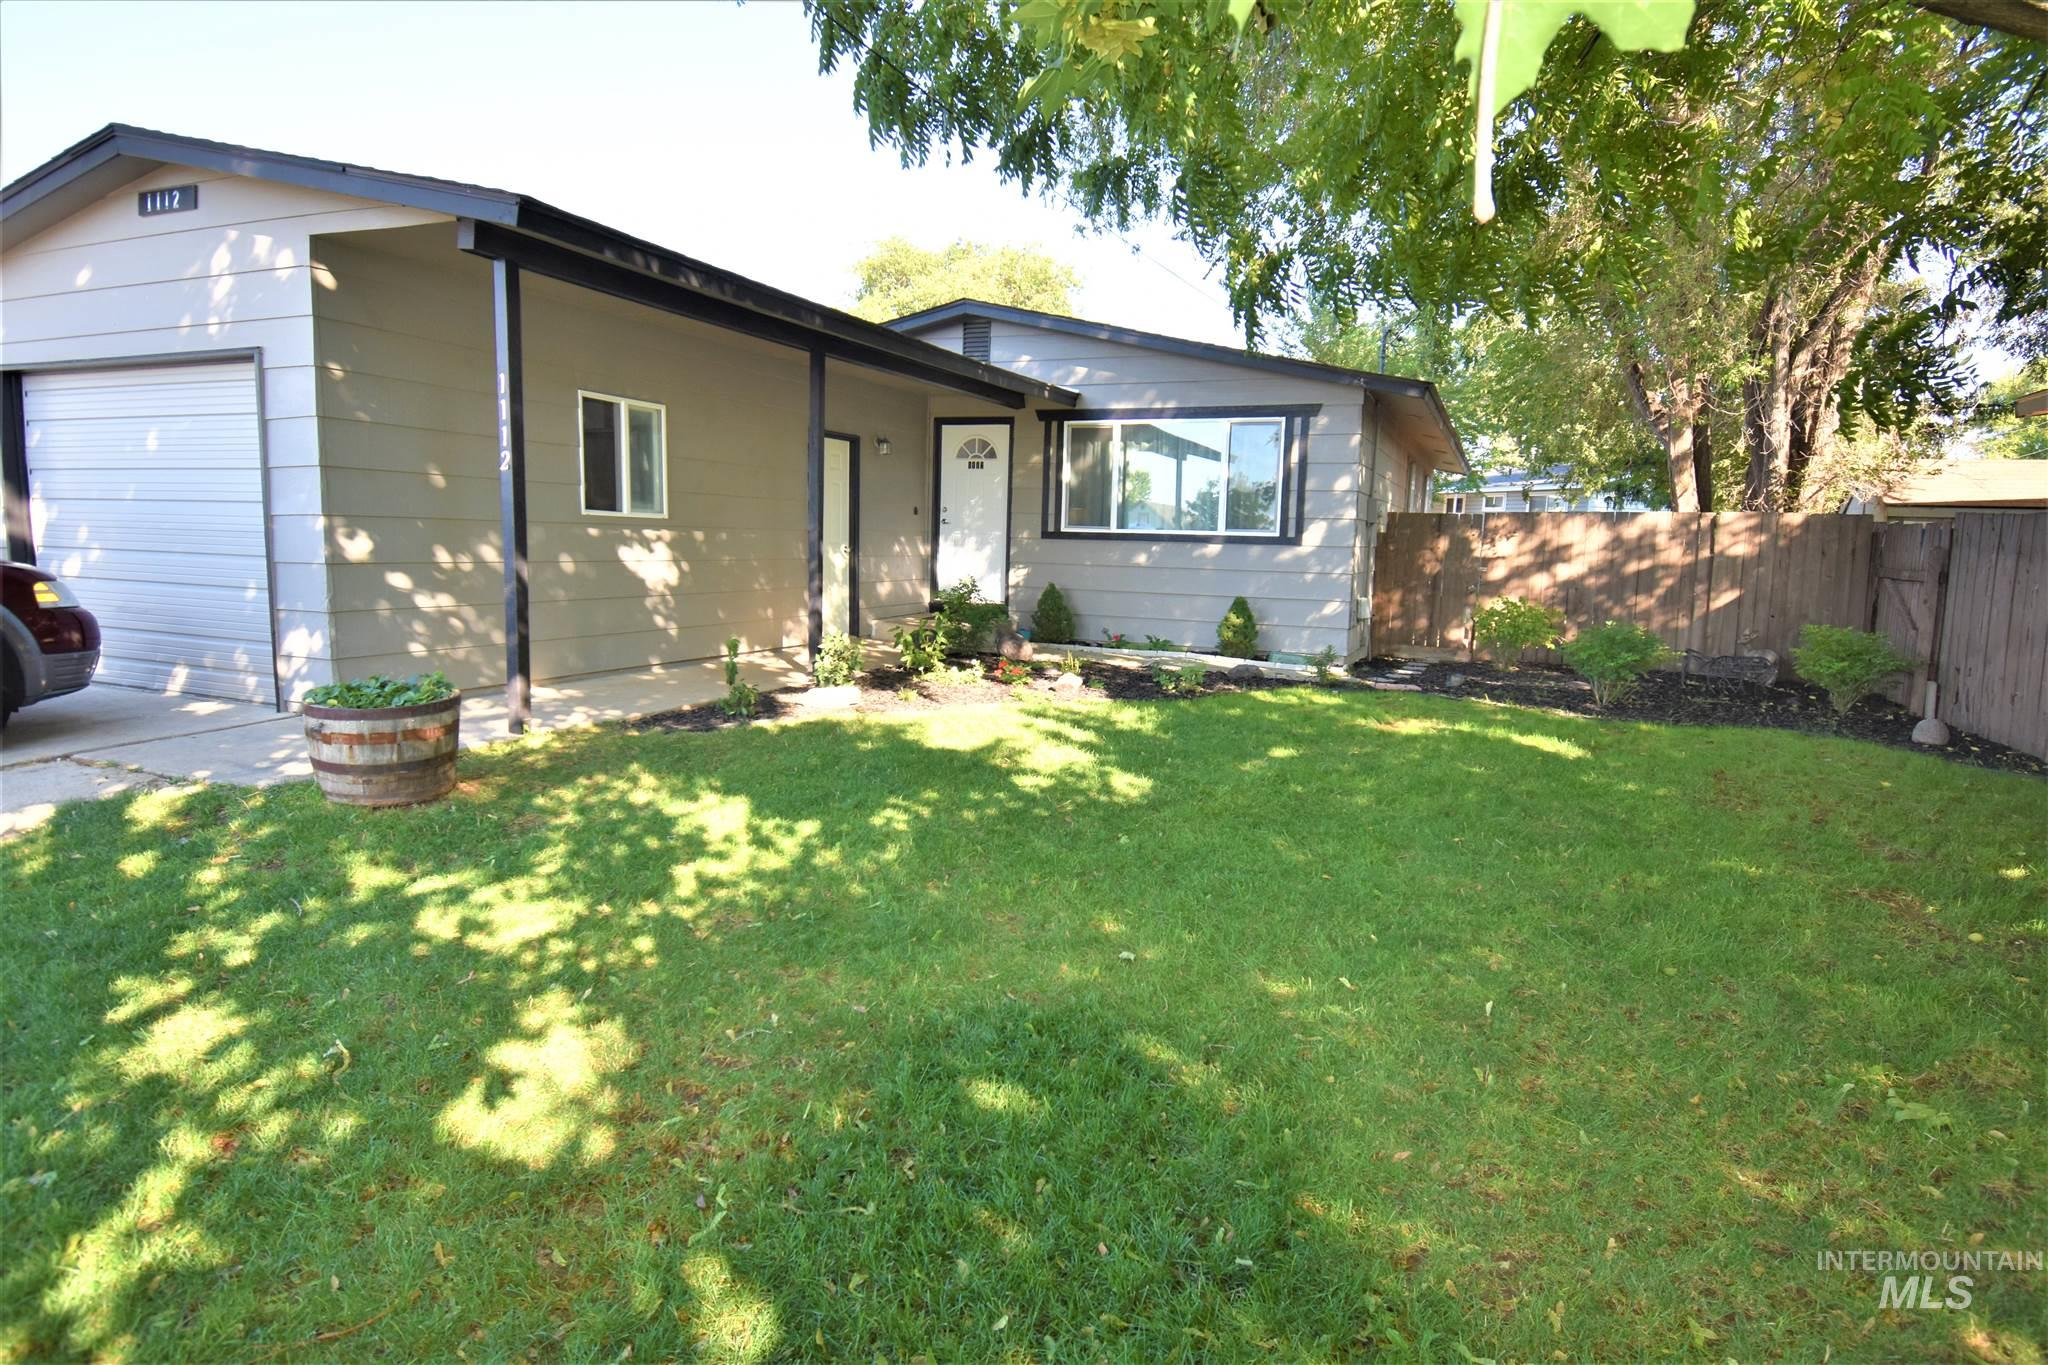 Photo for 1112 11th Ave. N, Nampa, ID 83687 (MLS # 98775830)